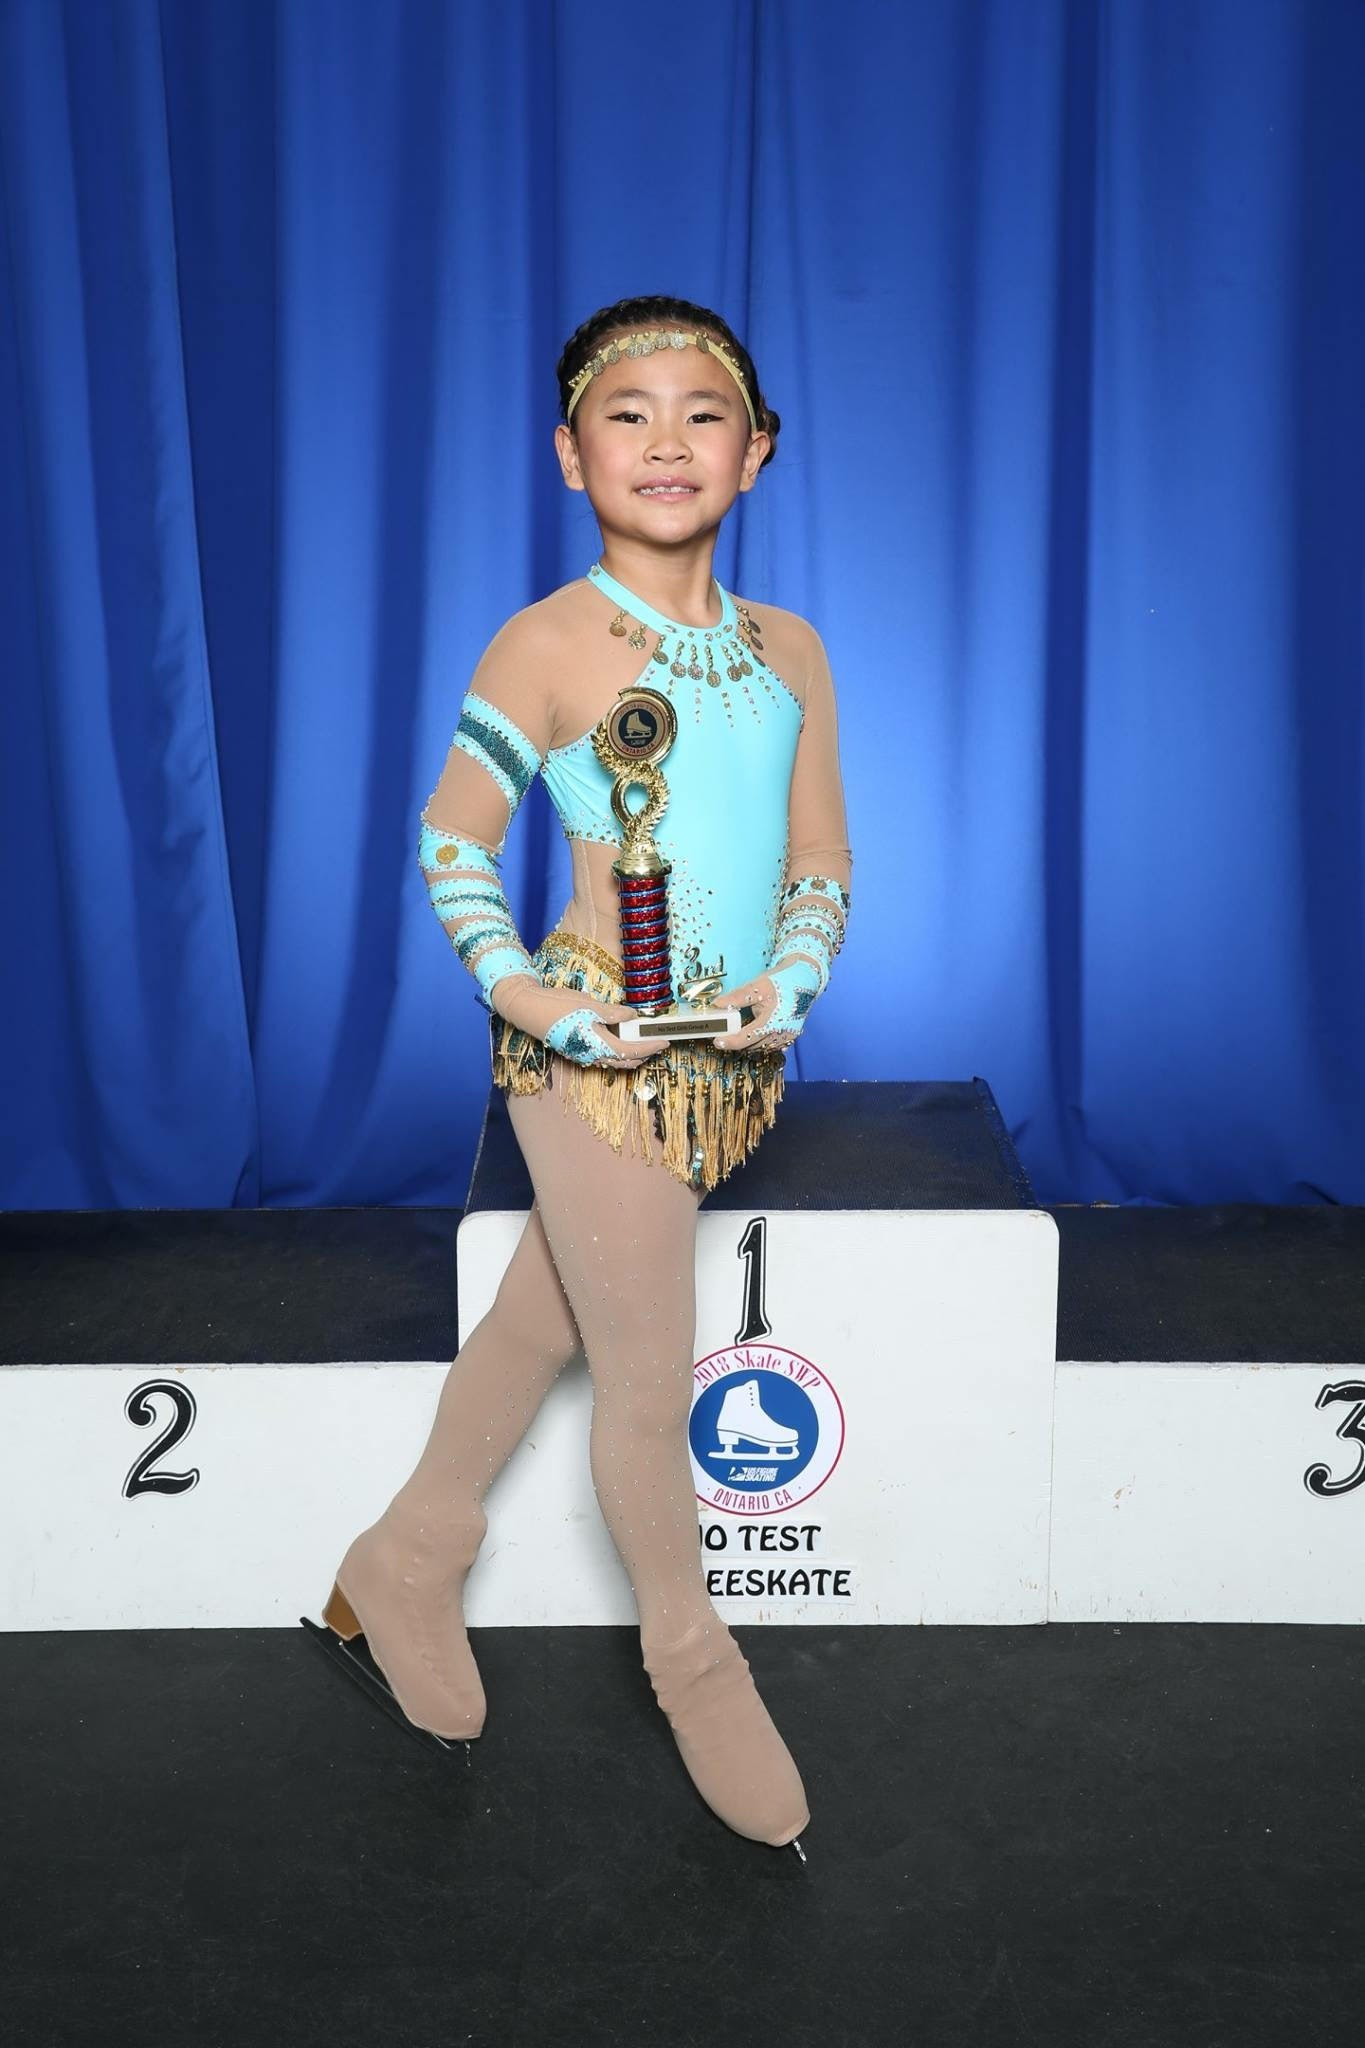 Student with ice skating awards